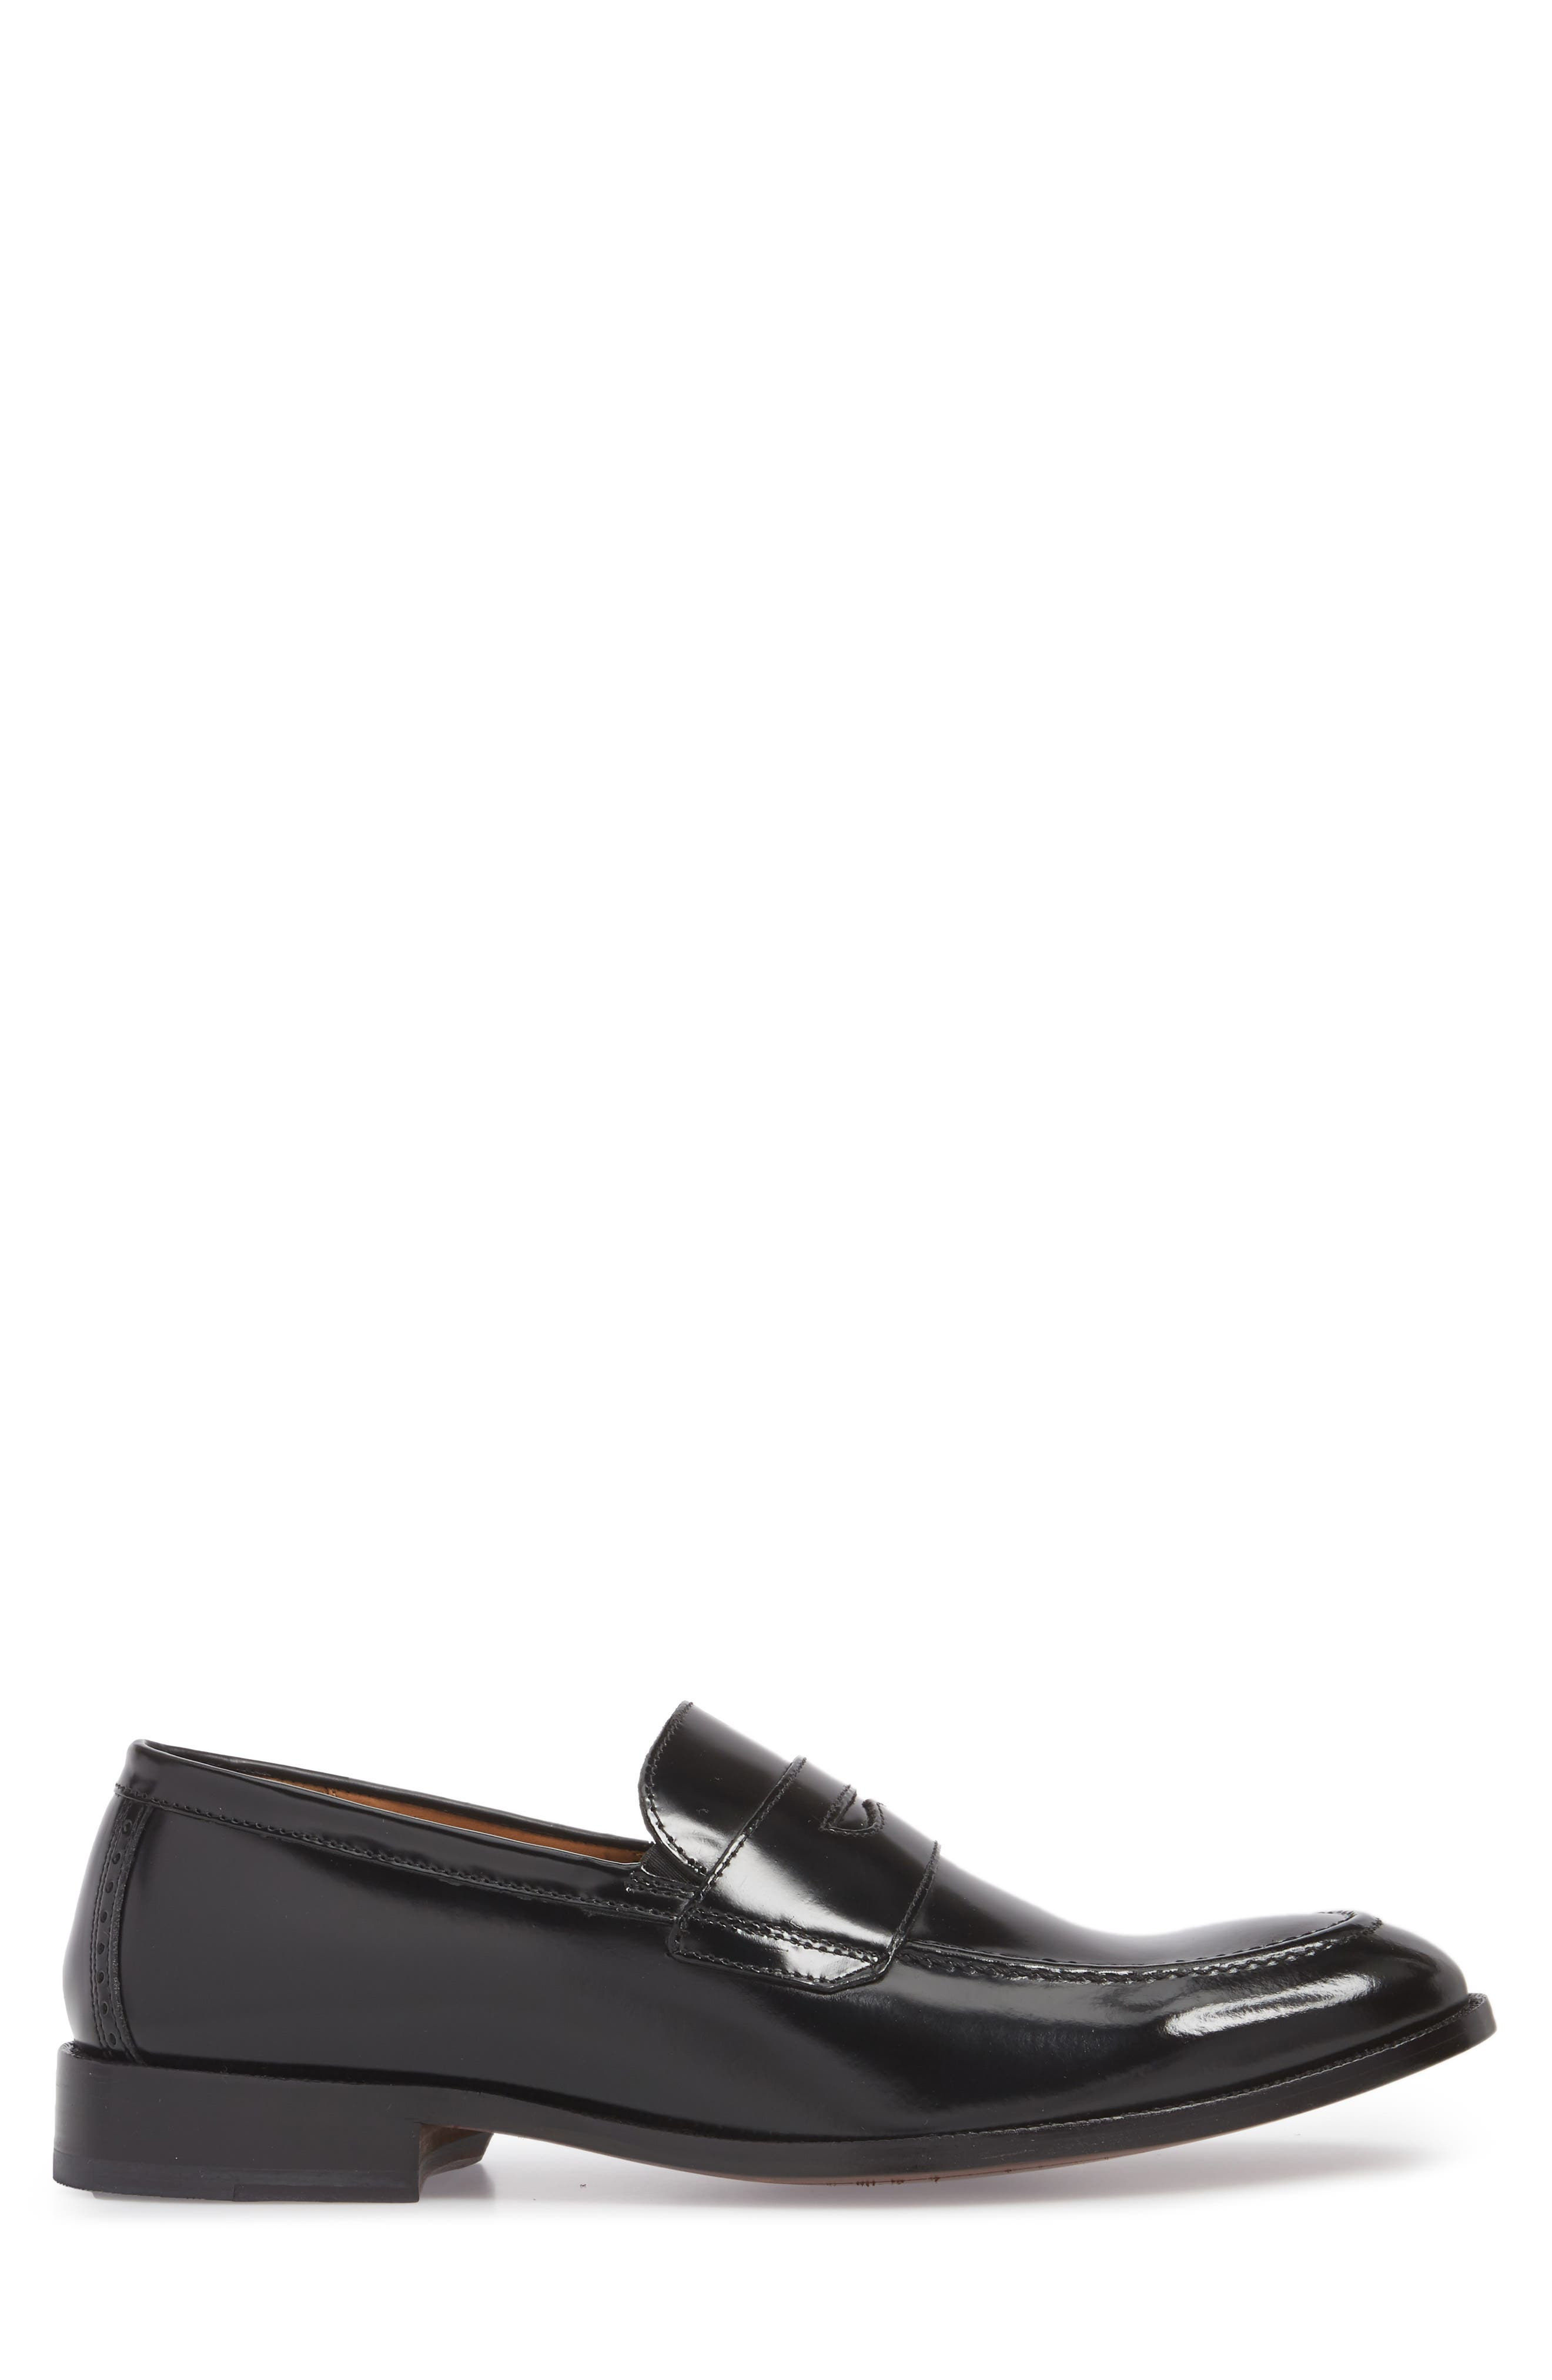 Bradford Penny Loafer,                             Alternate thumbnail 3, color,                             BLACK LEATHER